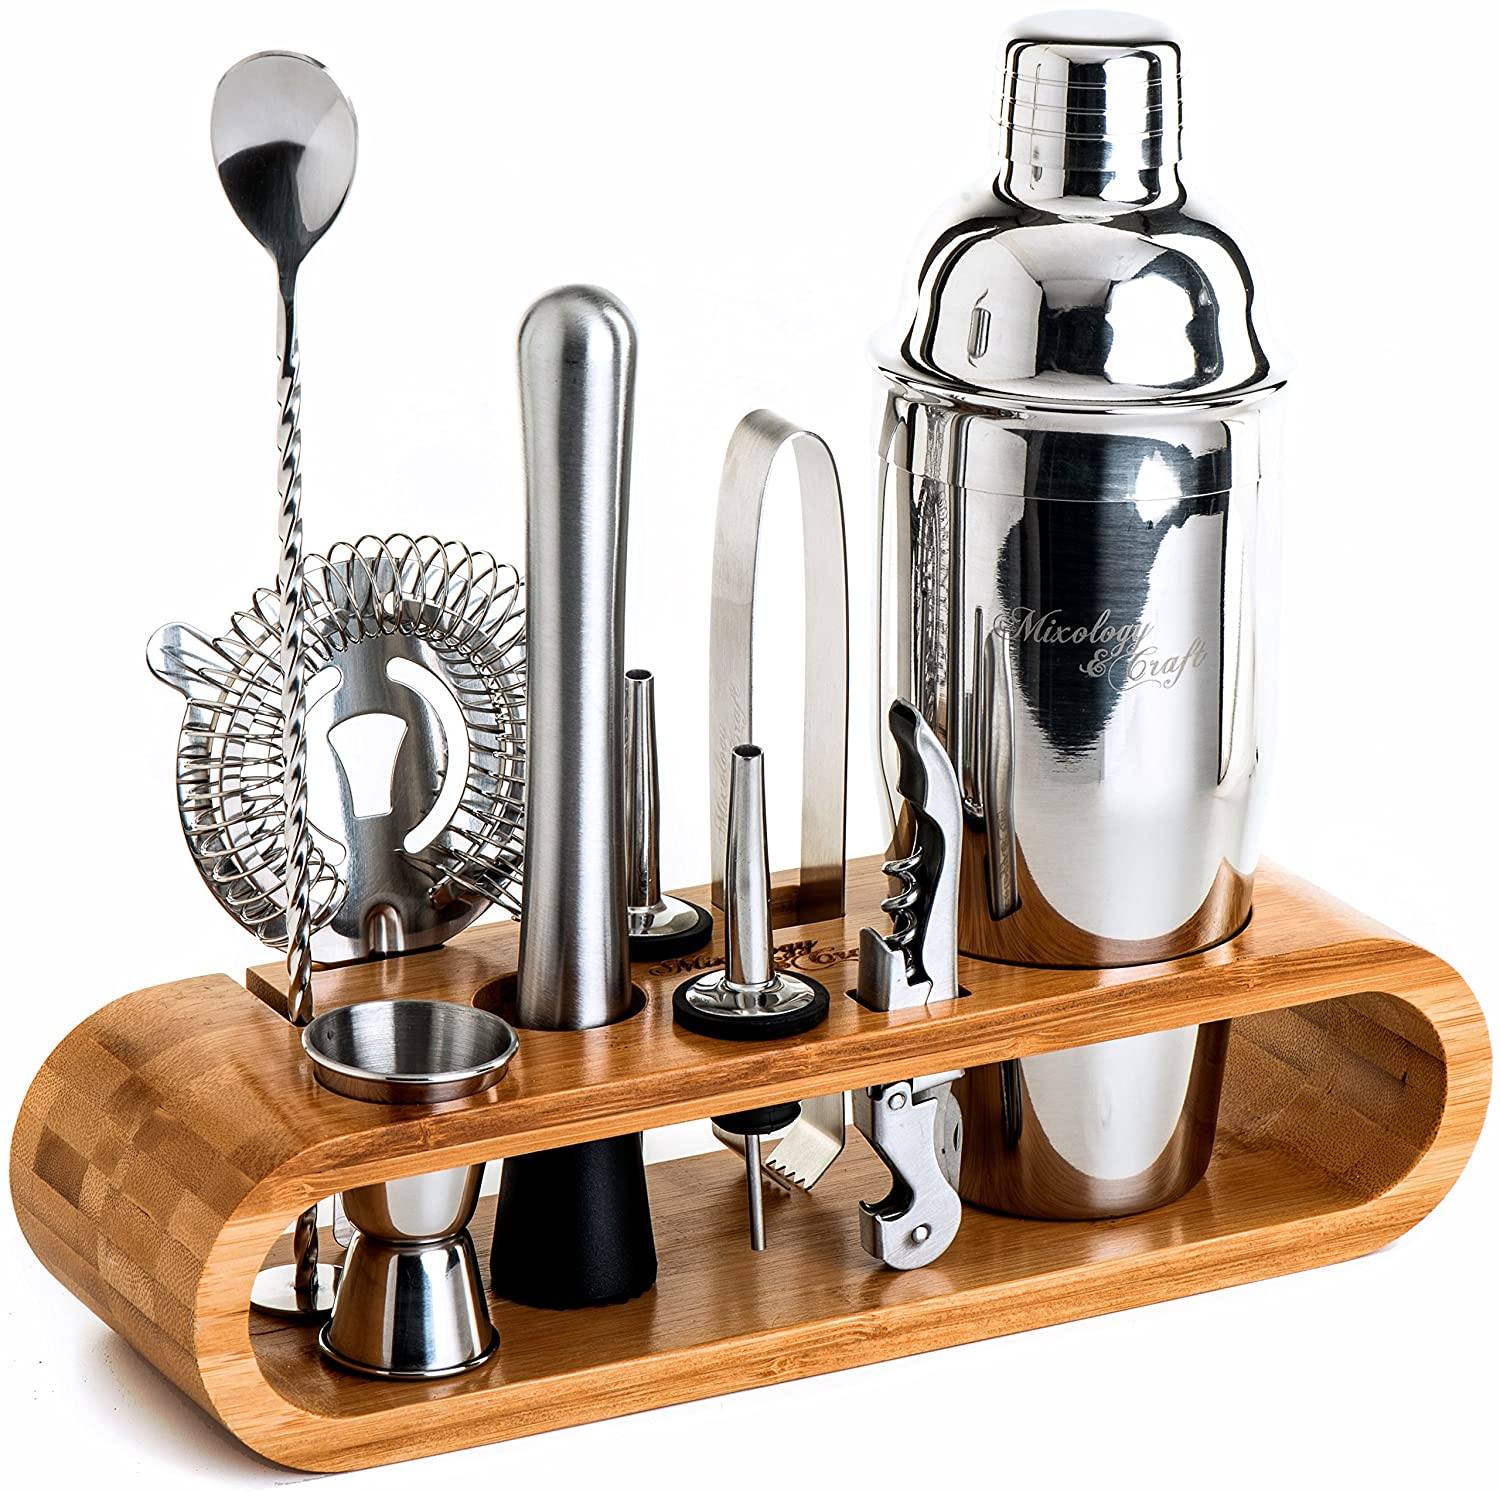 Mixology Bartender Kit: 10-Piece Bar Tool Set with Stylish Bamboo Stand - Perfect Home Bartending Kit and Cocktail Shaker Set For an Awesome Drink Mixing Experience - Exclusive Cocktail Recipes Bonus